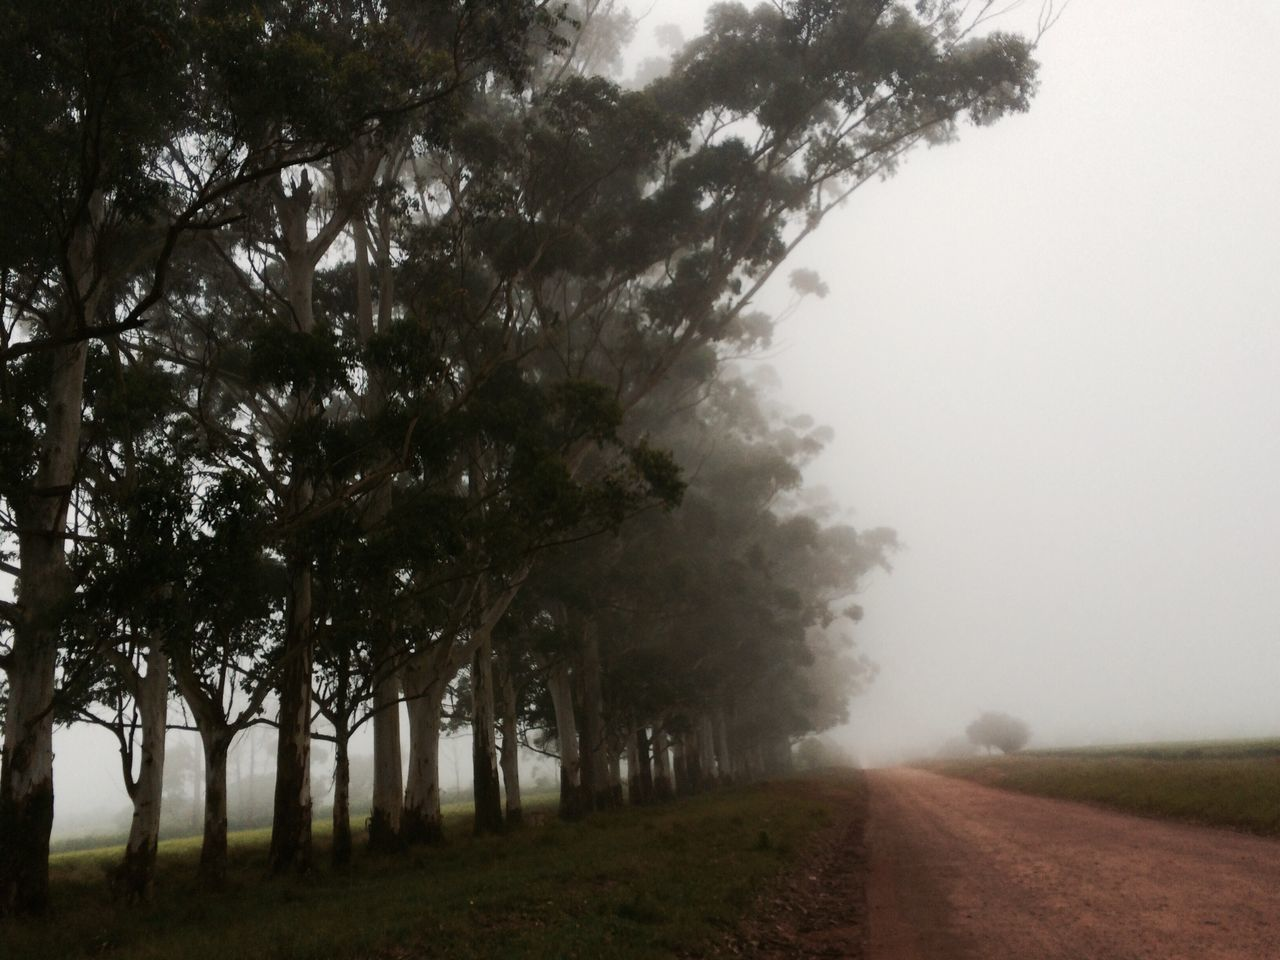 tree, fog, landscape, nature, road, the way forward, diminishing perspective, tranquility, scenics, outdoors, tranquil scene, day, beauty in nature, mist, no people, grass, sky